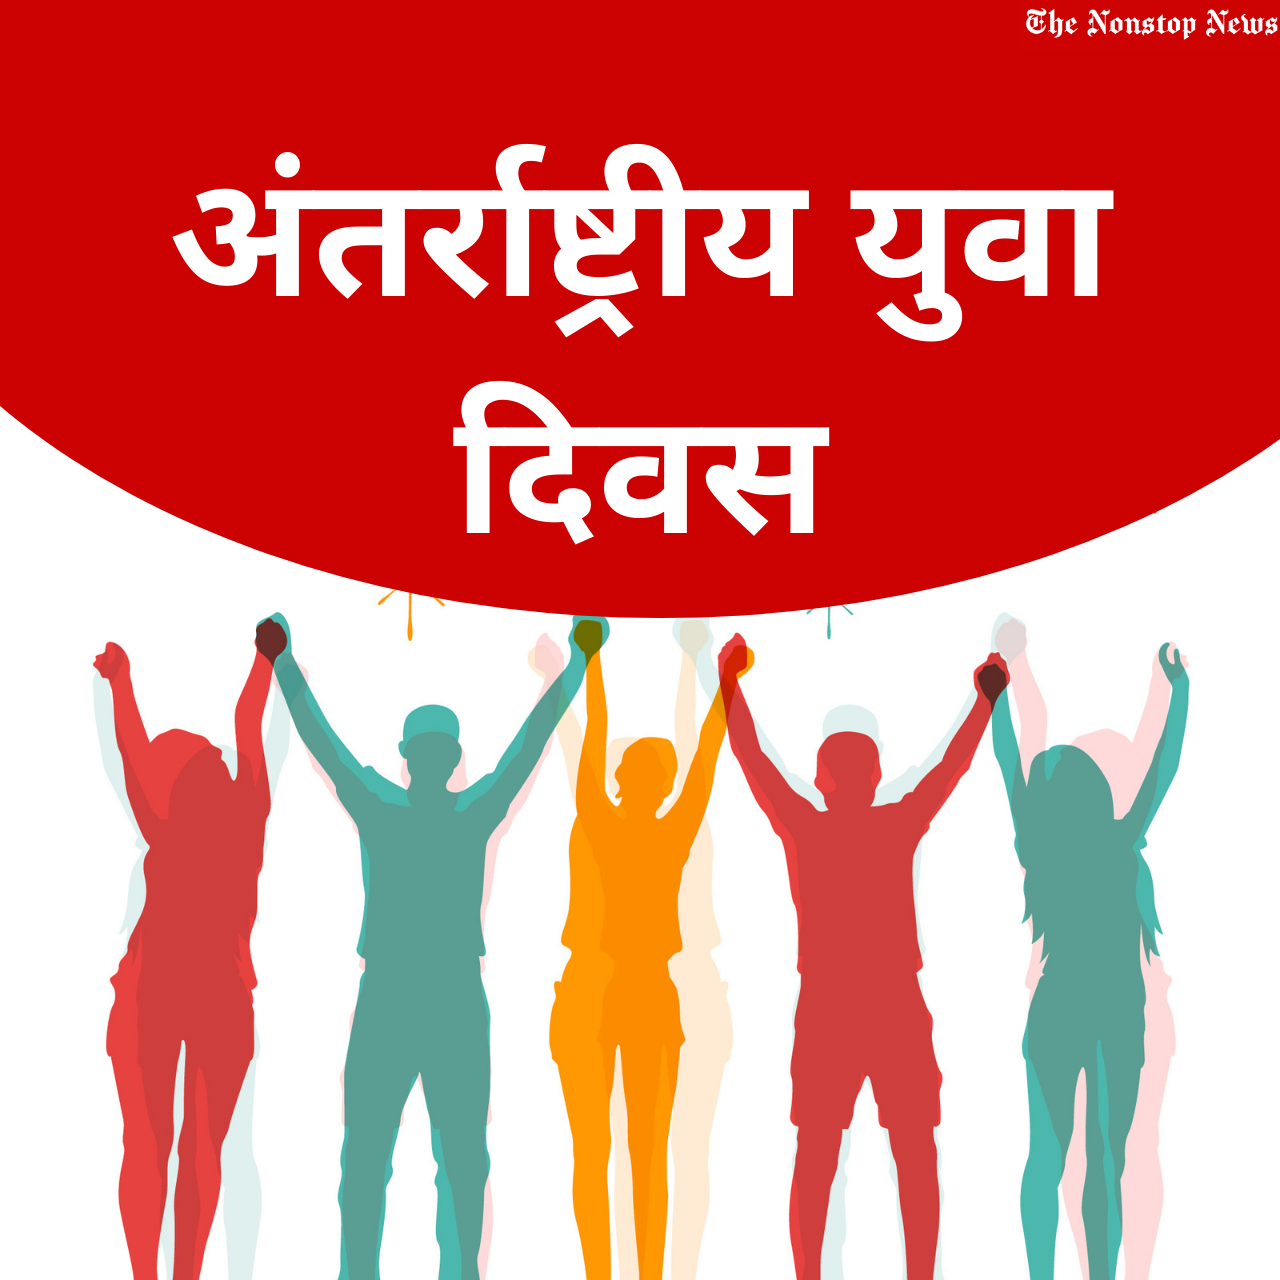 International Youth Day 2021 Hindi Wishes, Quotes, Poster, Messages, Greetings, Status, and HD Images to Share